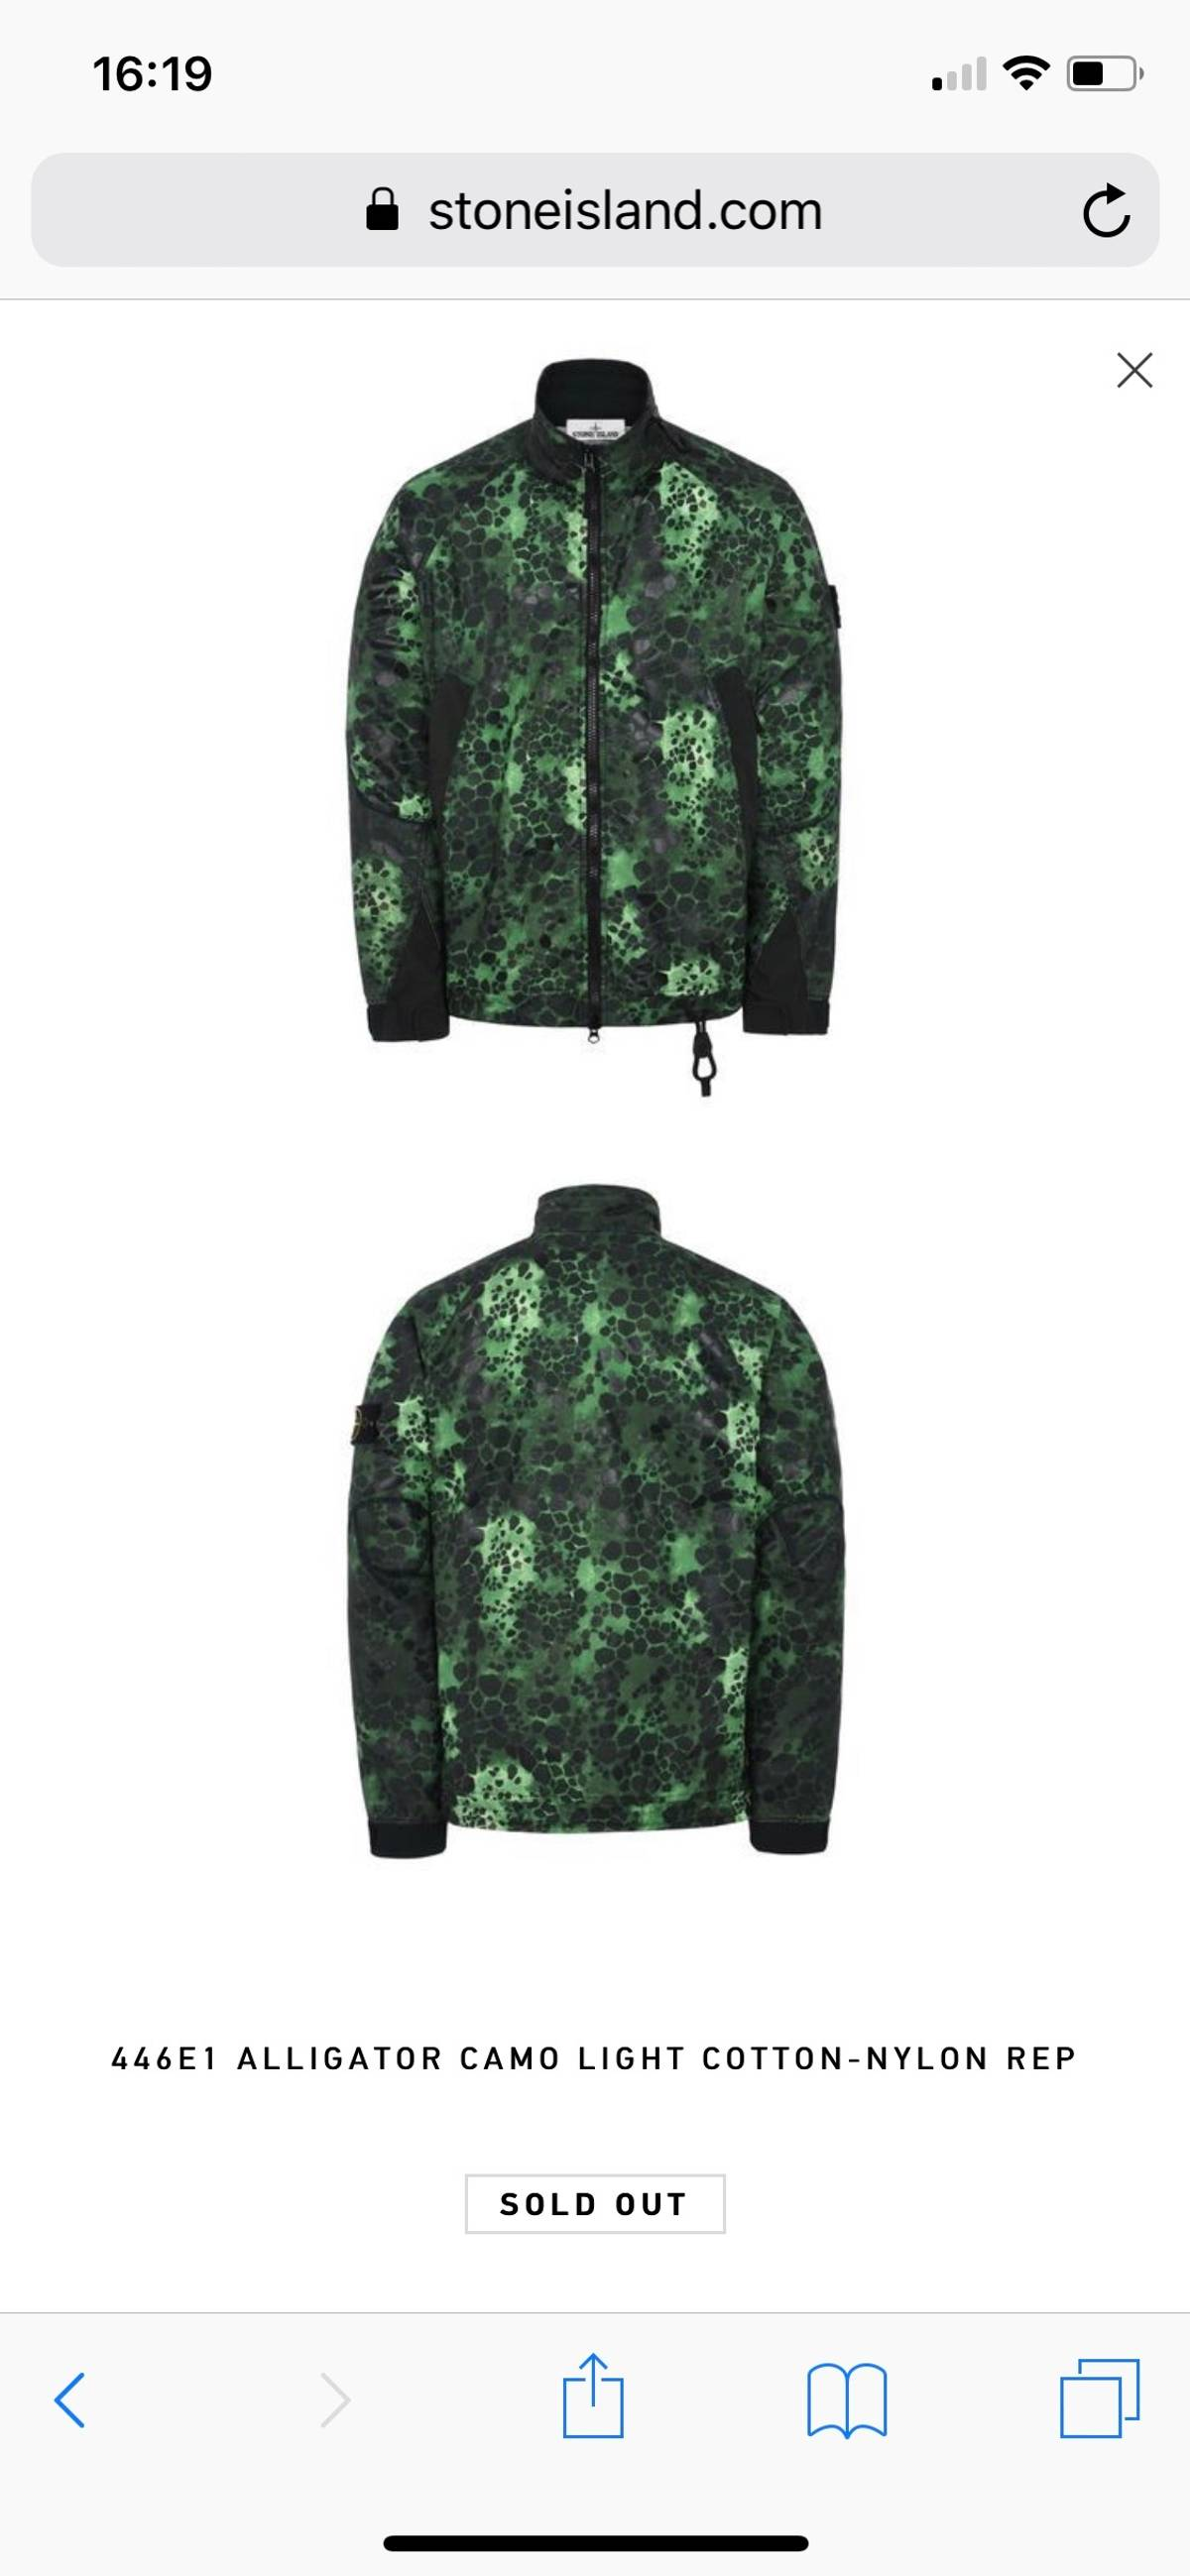 422c6ce173393 Stone Island Shadow Project ×. 446E1 ALLIGATOR CAMO LIGHT COTTON-NYLON REP